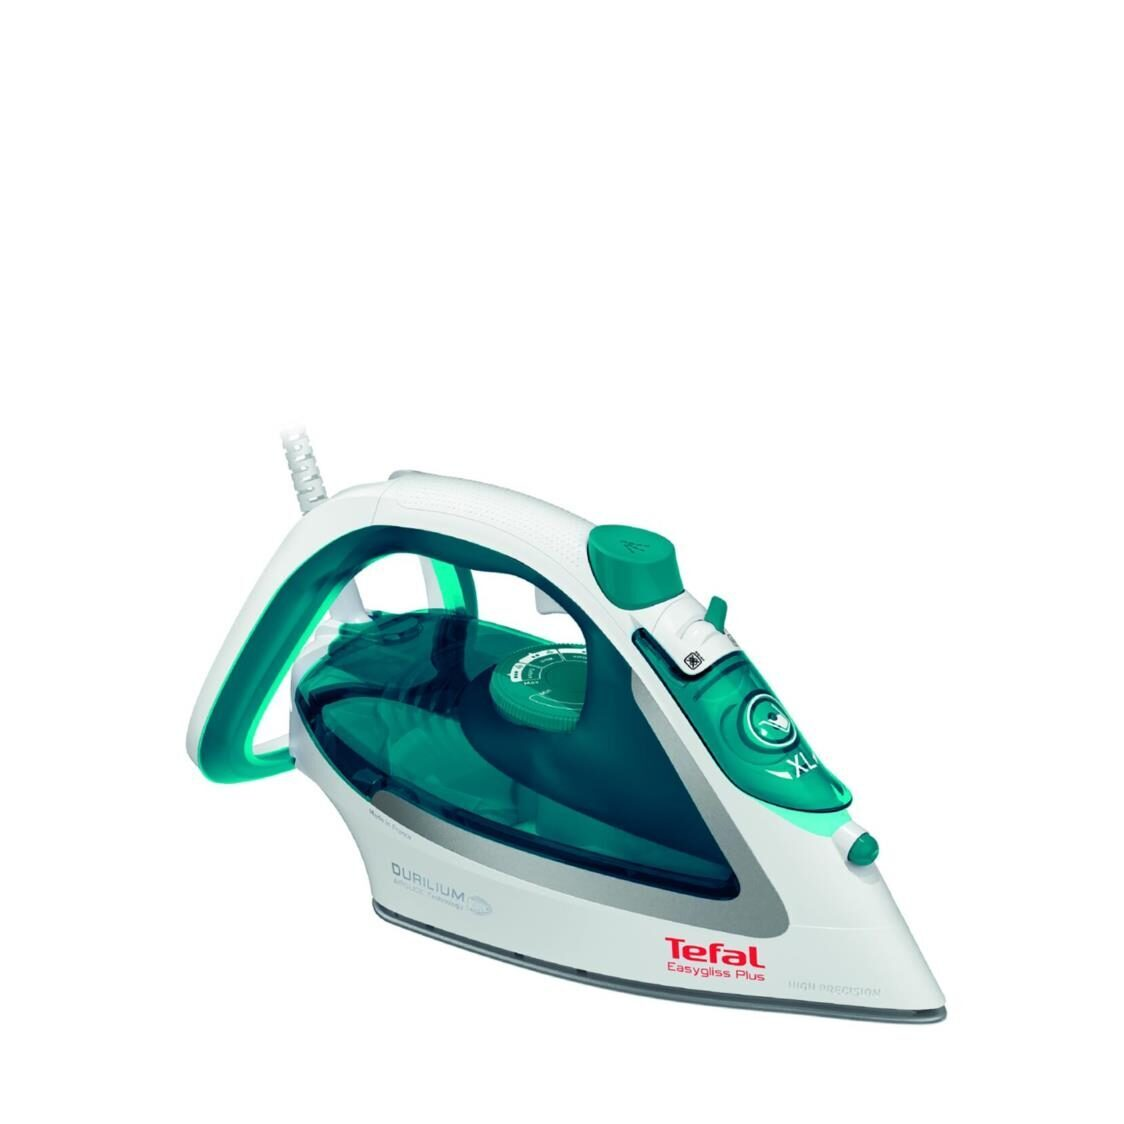 Tefal Steam Iron Easy Gliss 2 Turquoise FV5718